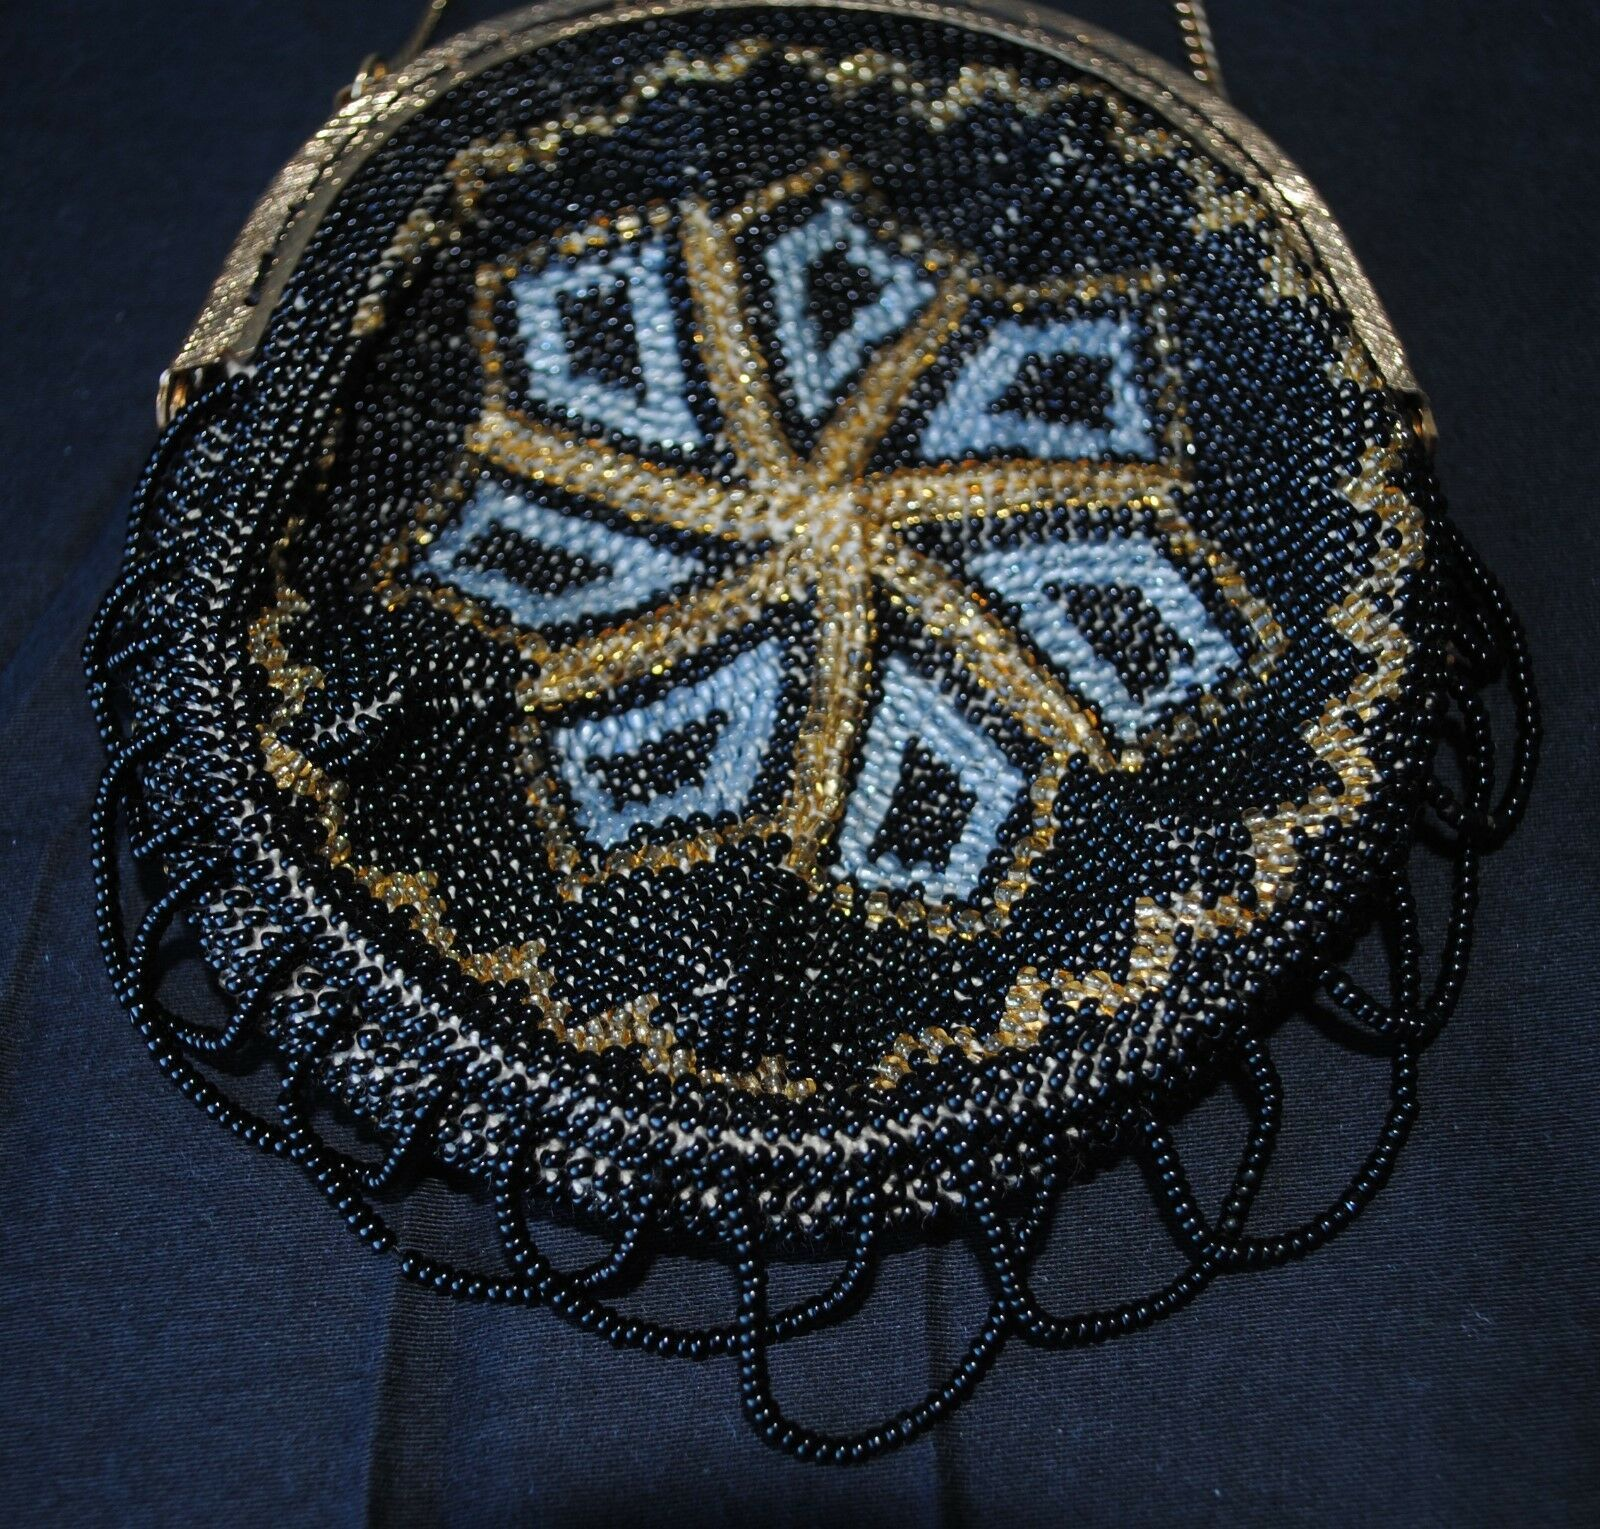 Vintage beaded purse bag for large antique french or or or german doll f77a3f